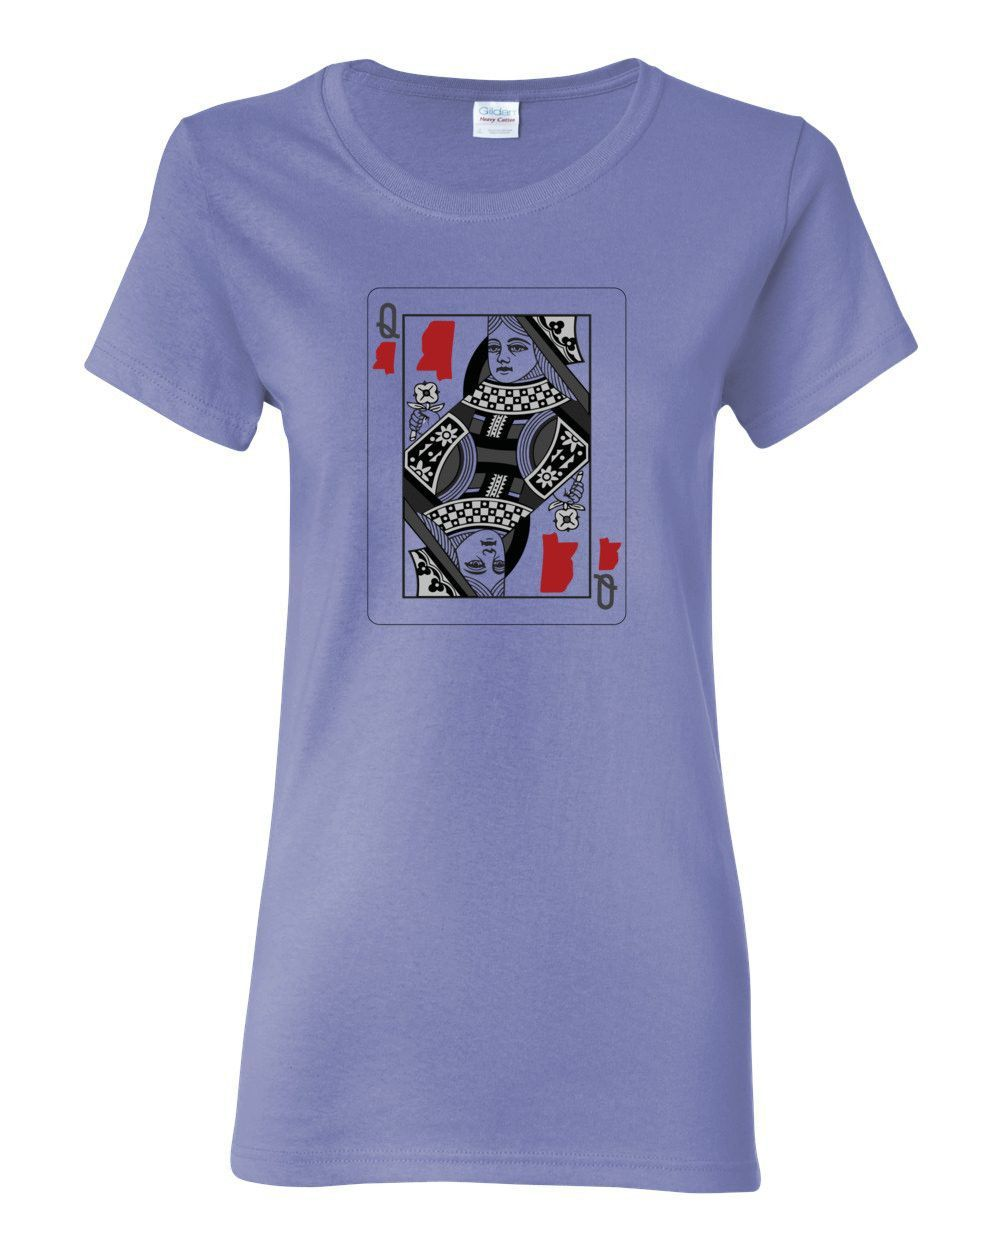 Queen of Mississippi t-shirt